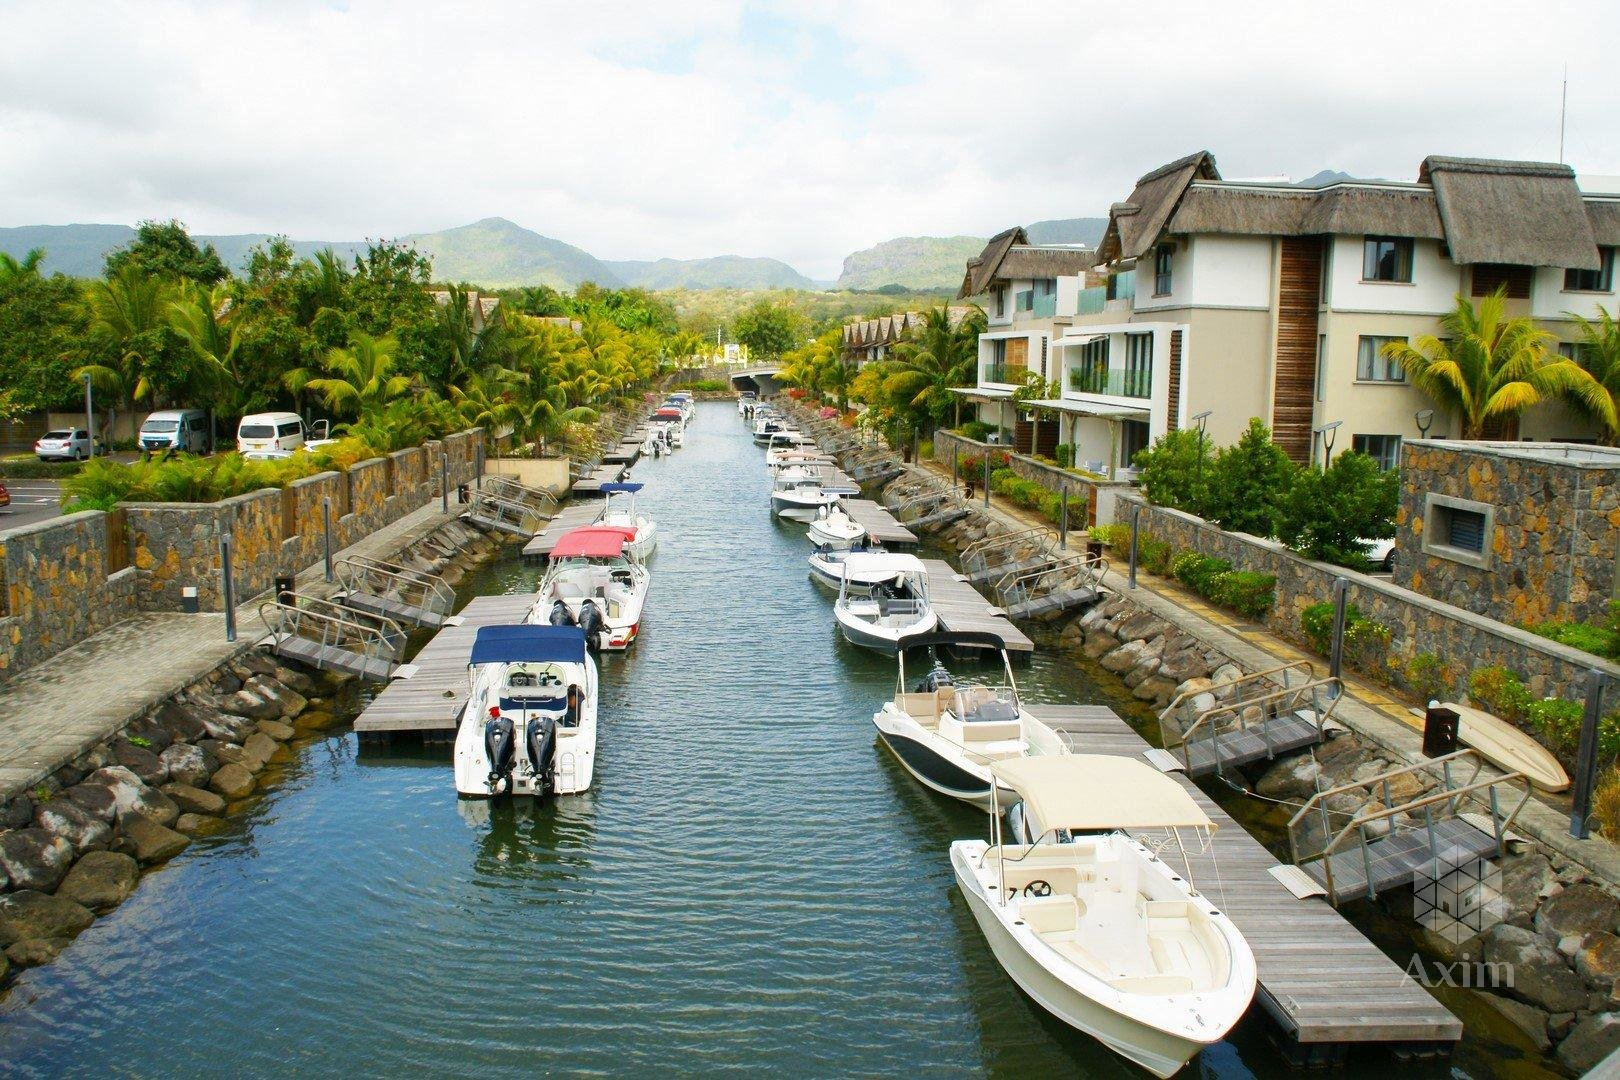 TAMARIN (mauritius island) - Modern apartment with boat location